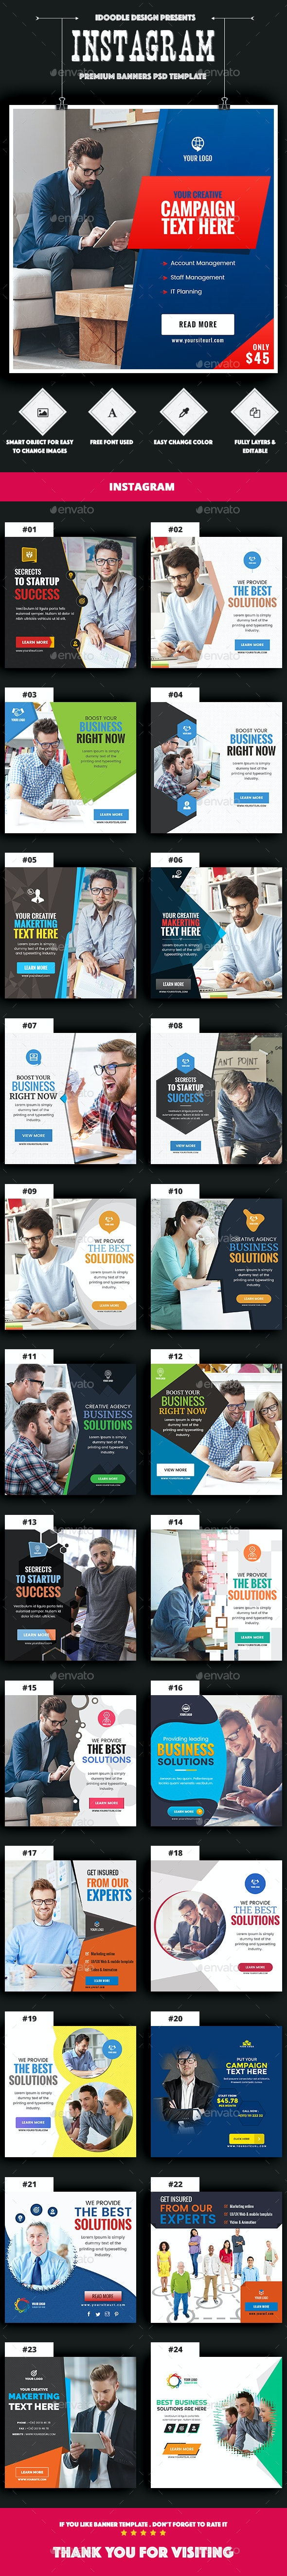 Multipurpose, Business, Startup Instagram Banners Ad - 25PSD - Banners & Ads Web Elements